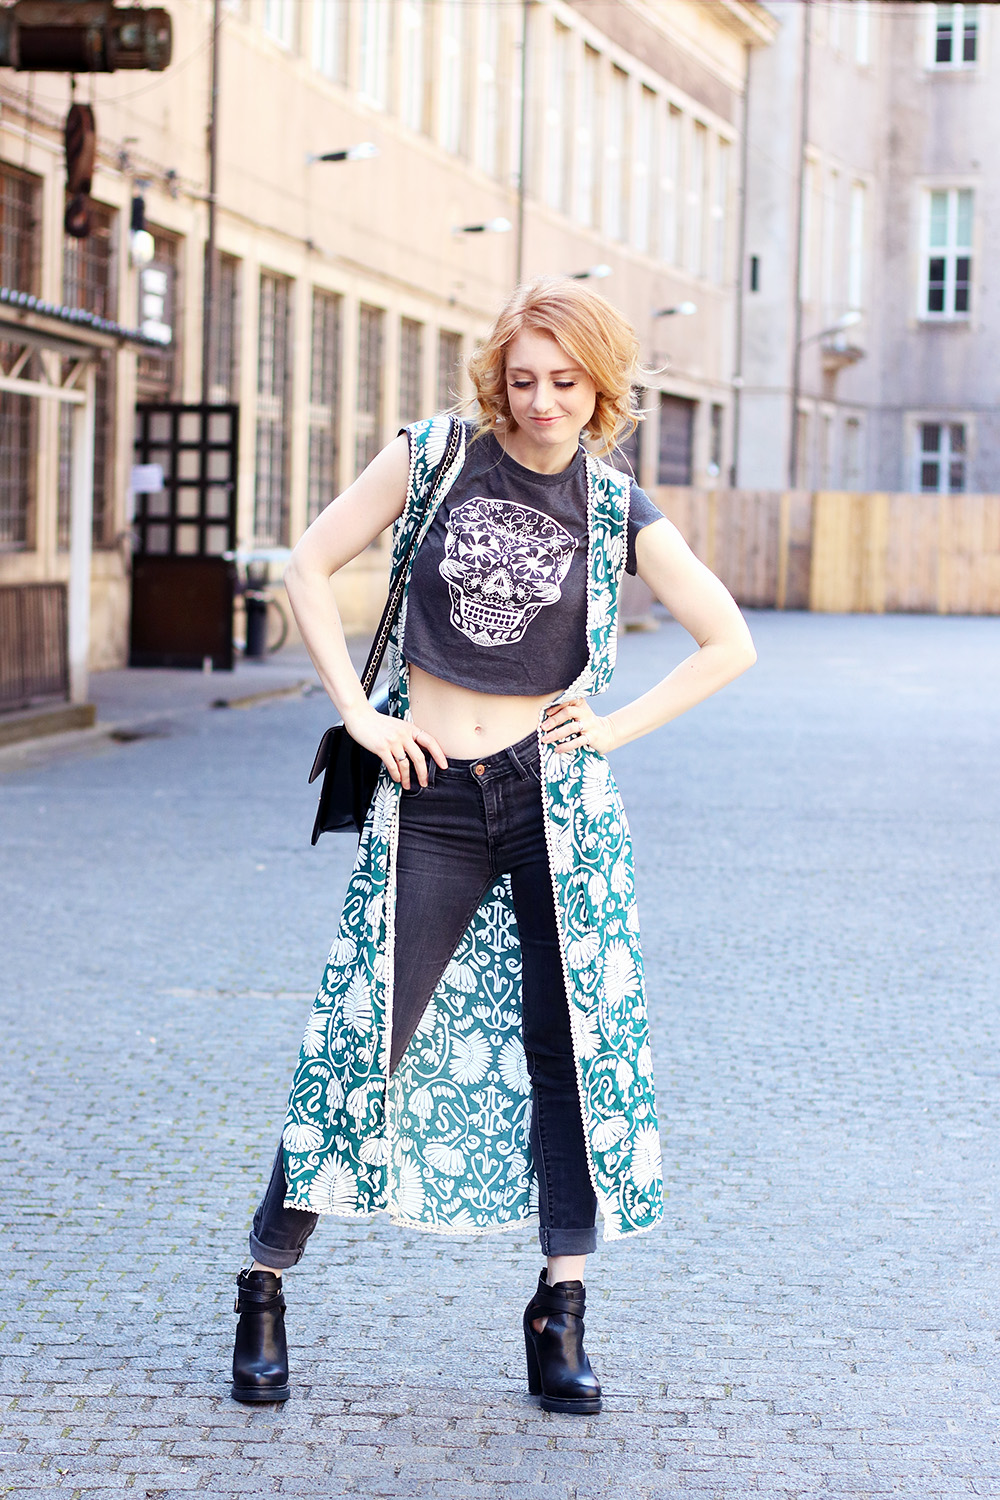 Weste, Slimfit Jeans Levi's, High Waist, Passform, Sommer, Street Style Berlin, Outfit, Trend, Modetipps, Finde deinen Stil, Kiez, helle Haut, Influencer, Deutschland, Berlin, Streetstyle, Mode Blog, Modeblog, Advance Your Style, advanceyourstyle